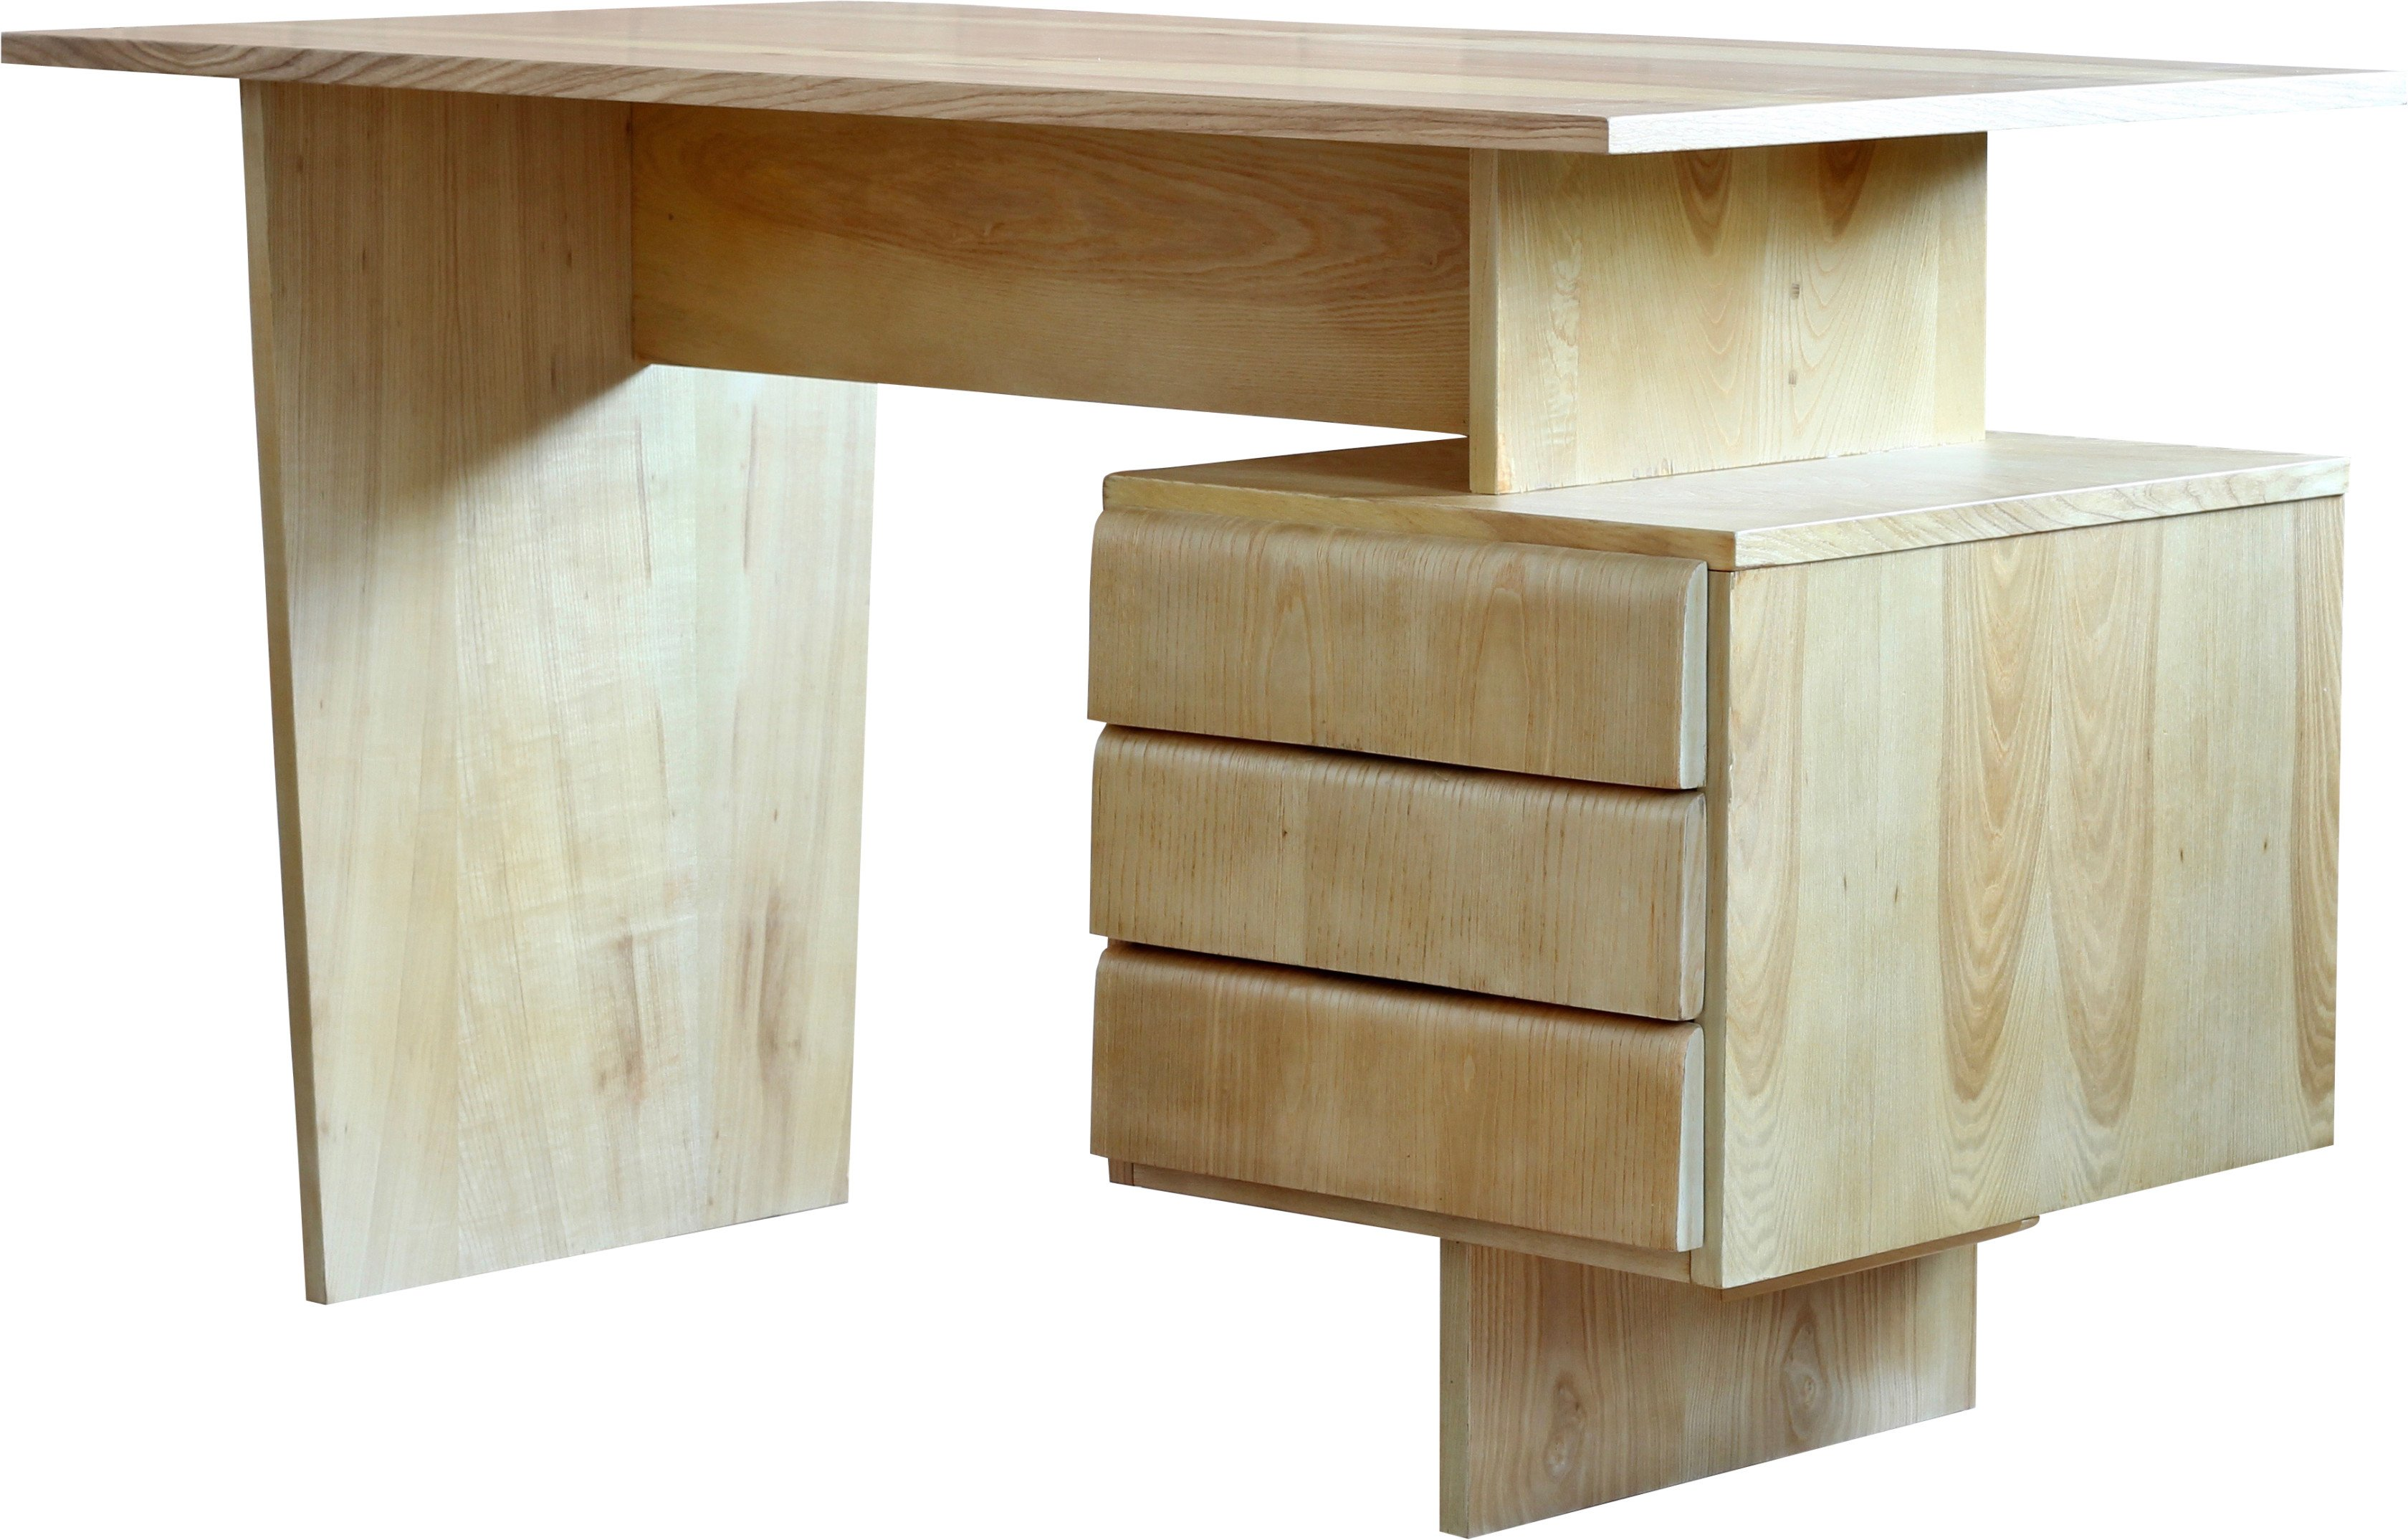 Desk by B. Landsman, 1970s